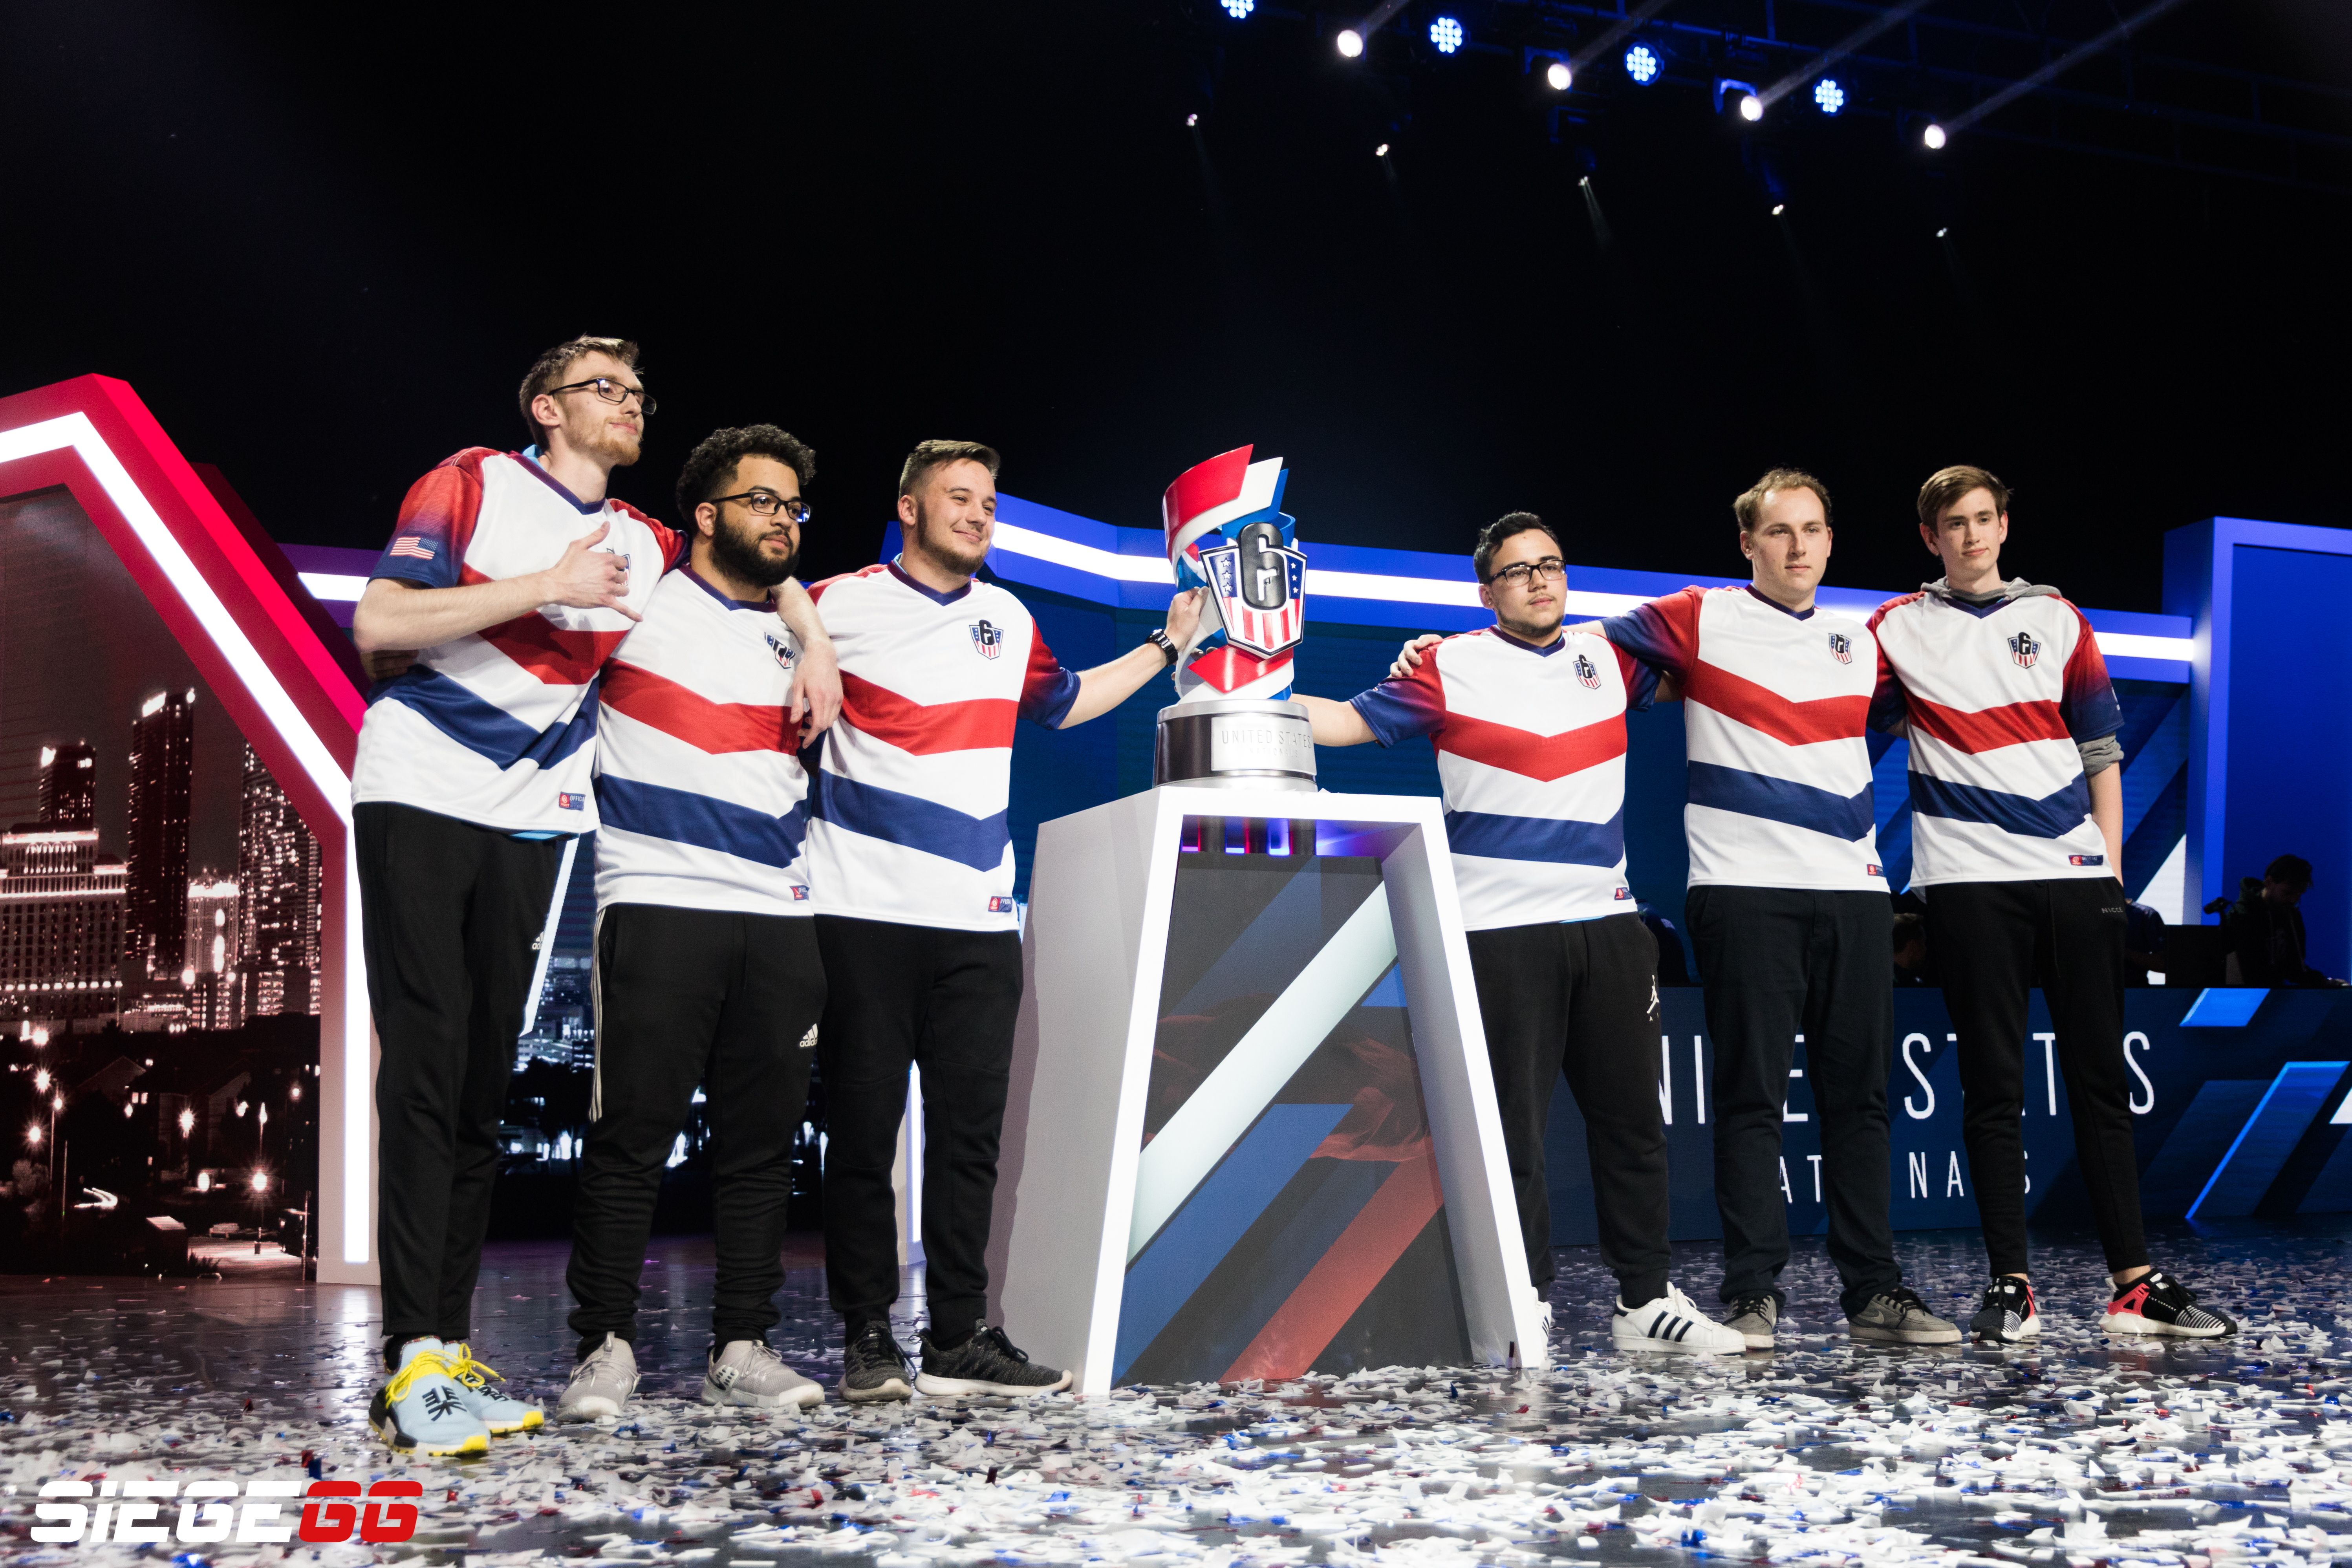 The previous roster after they won USN 2018.